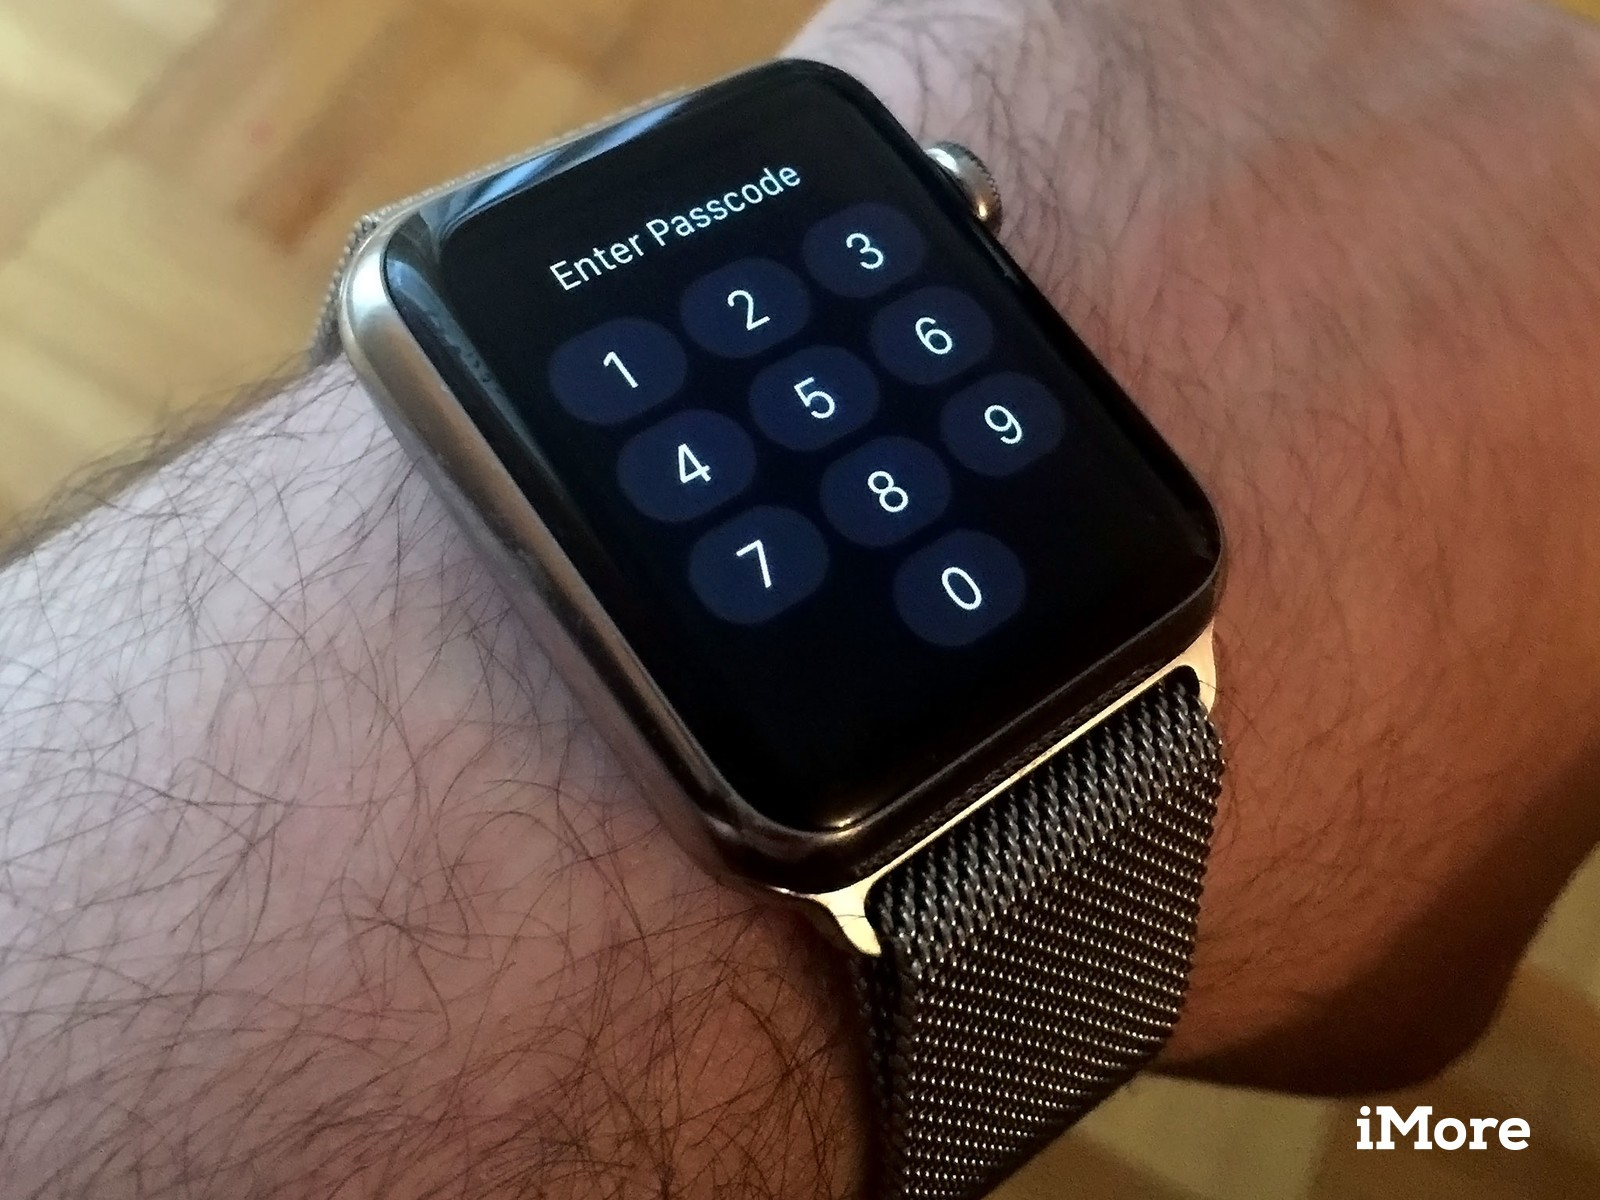 Apple Watch passcode screen